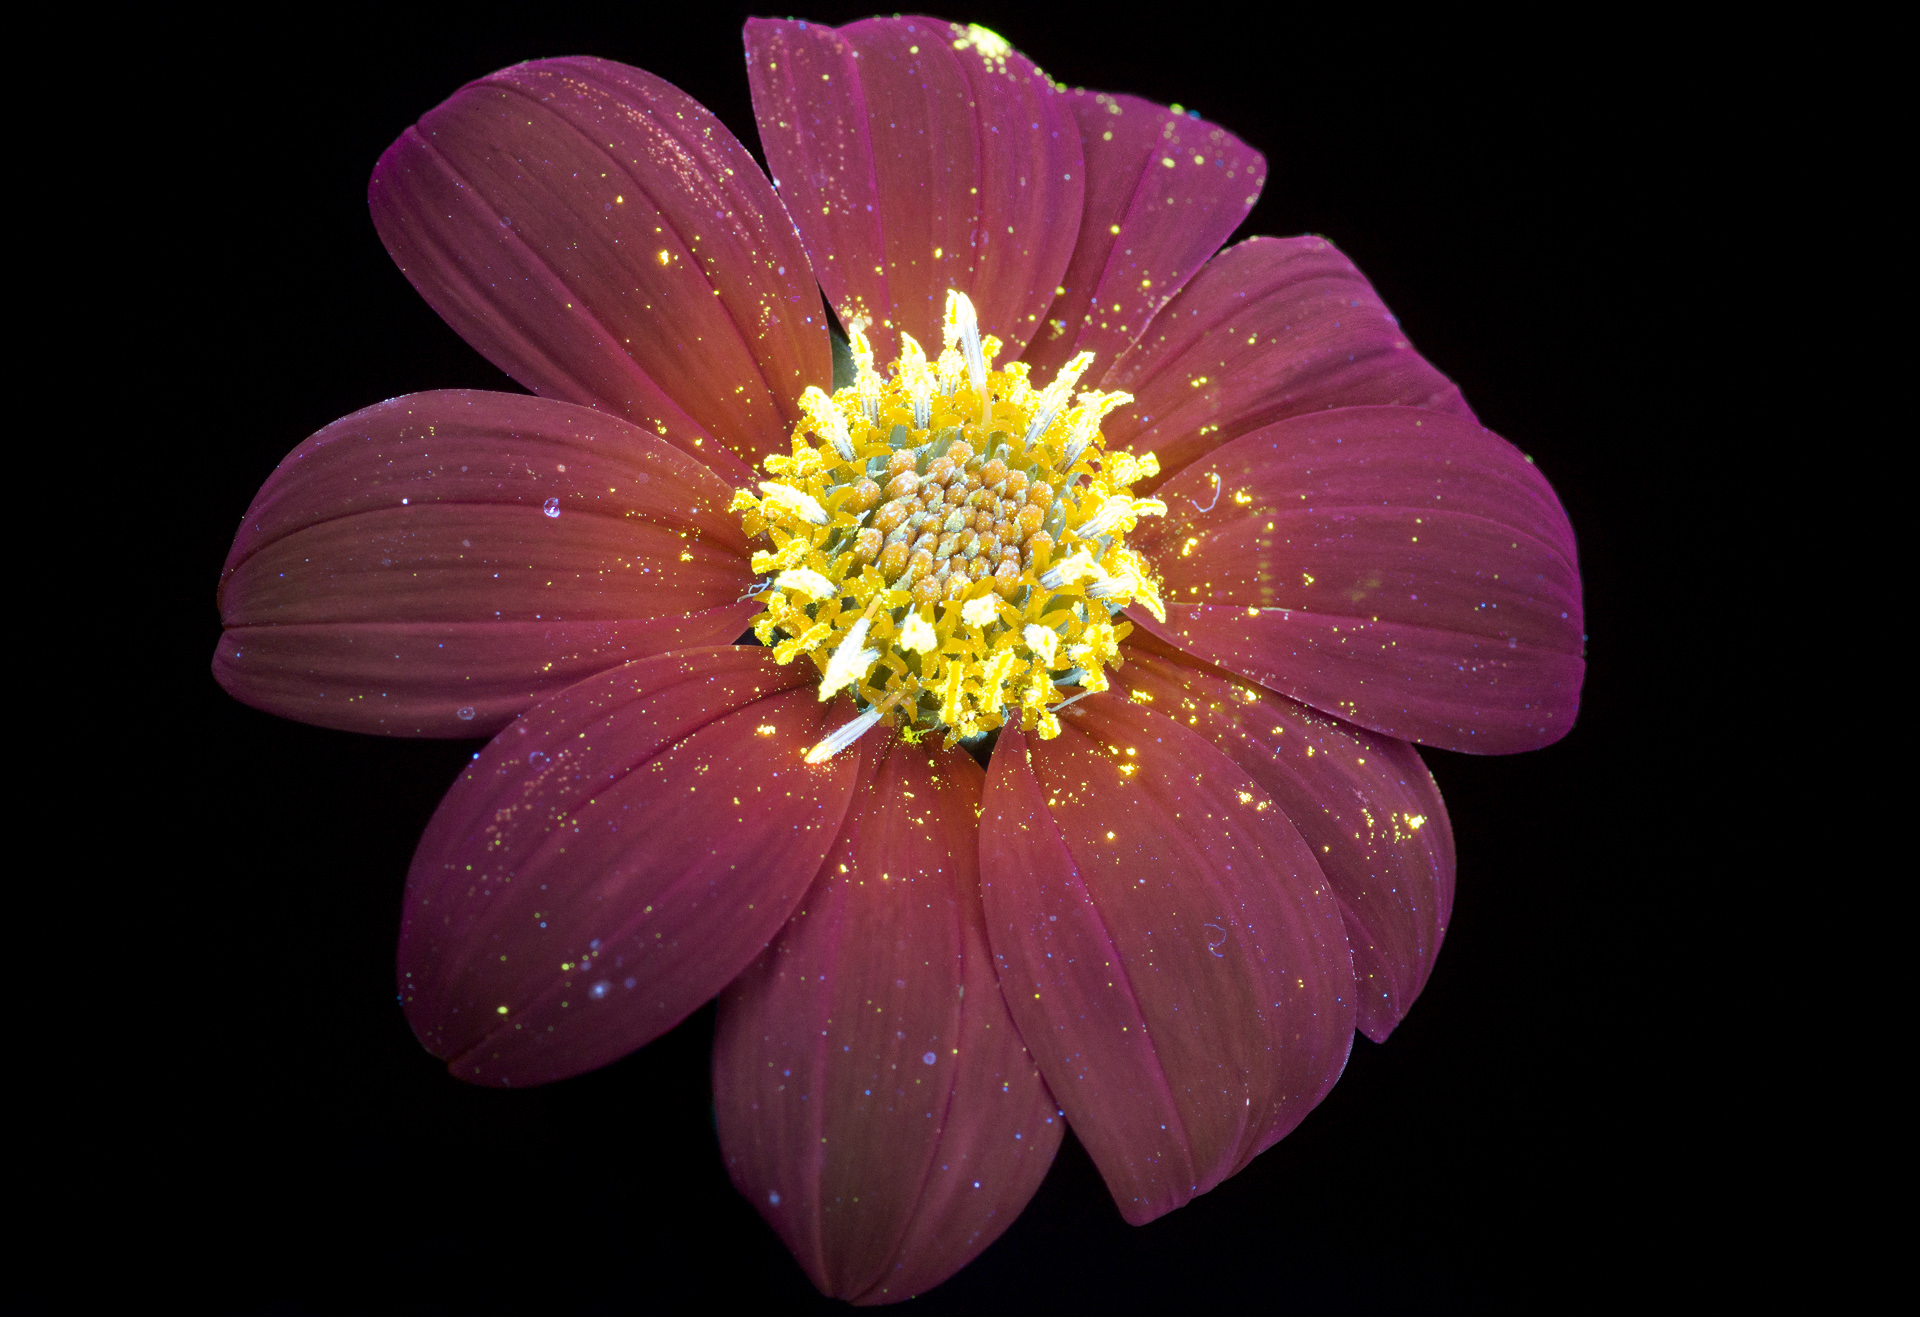 Glowing Flowers by photographer Craig Burrows #artpeople